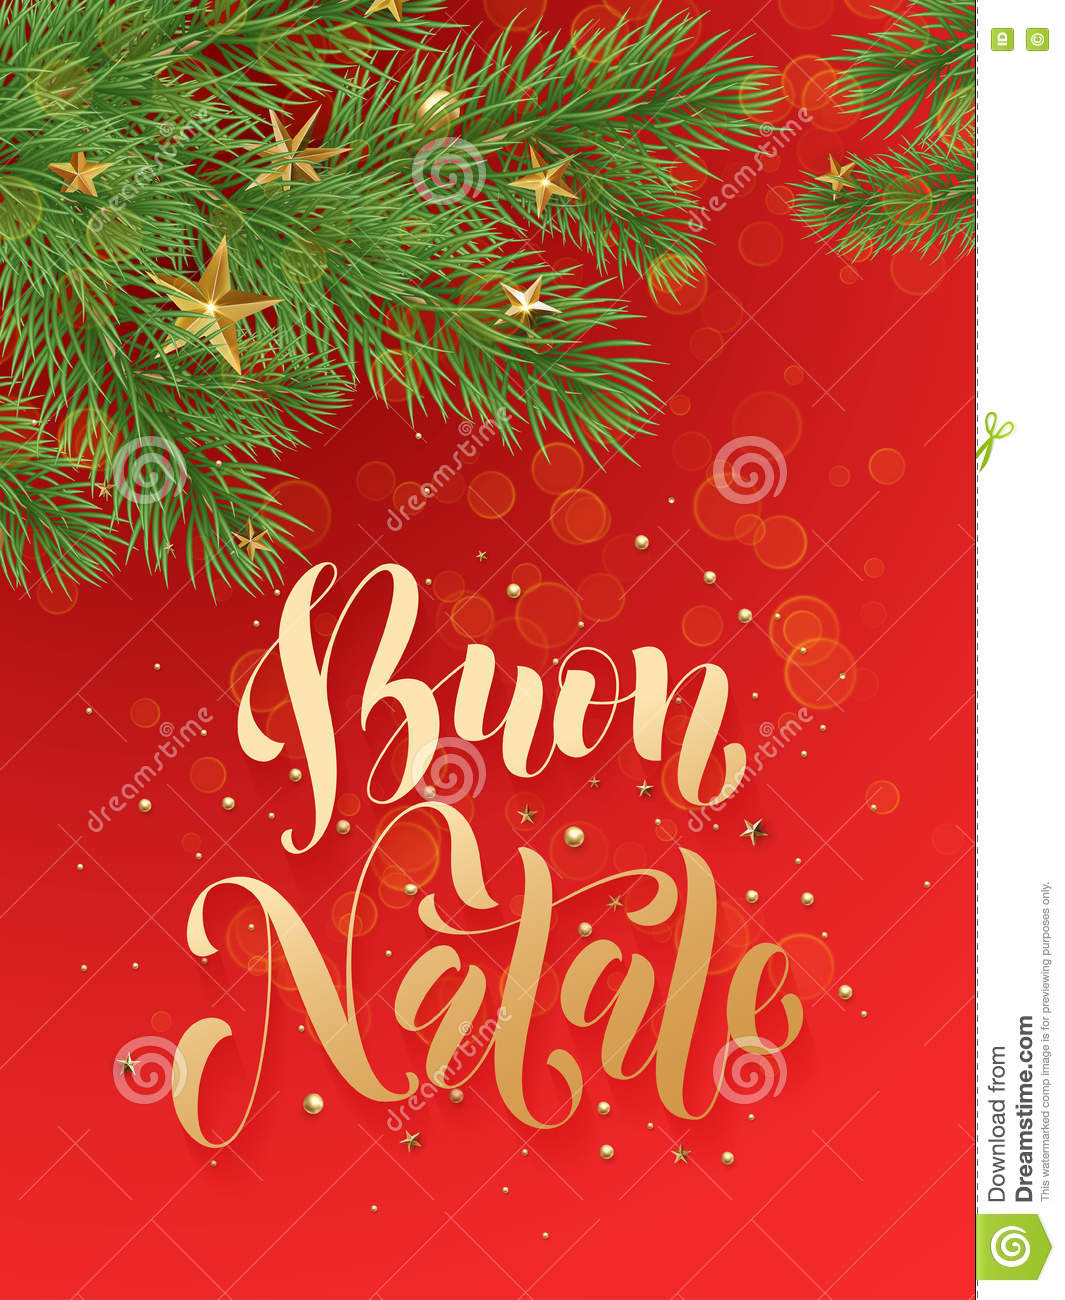 Merry En: Ornaments And Text Buon Natale, Merry Christmas In Italian